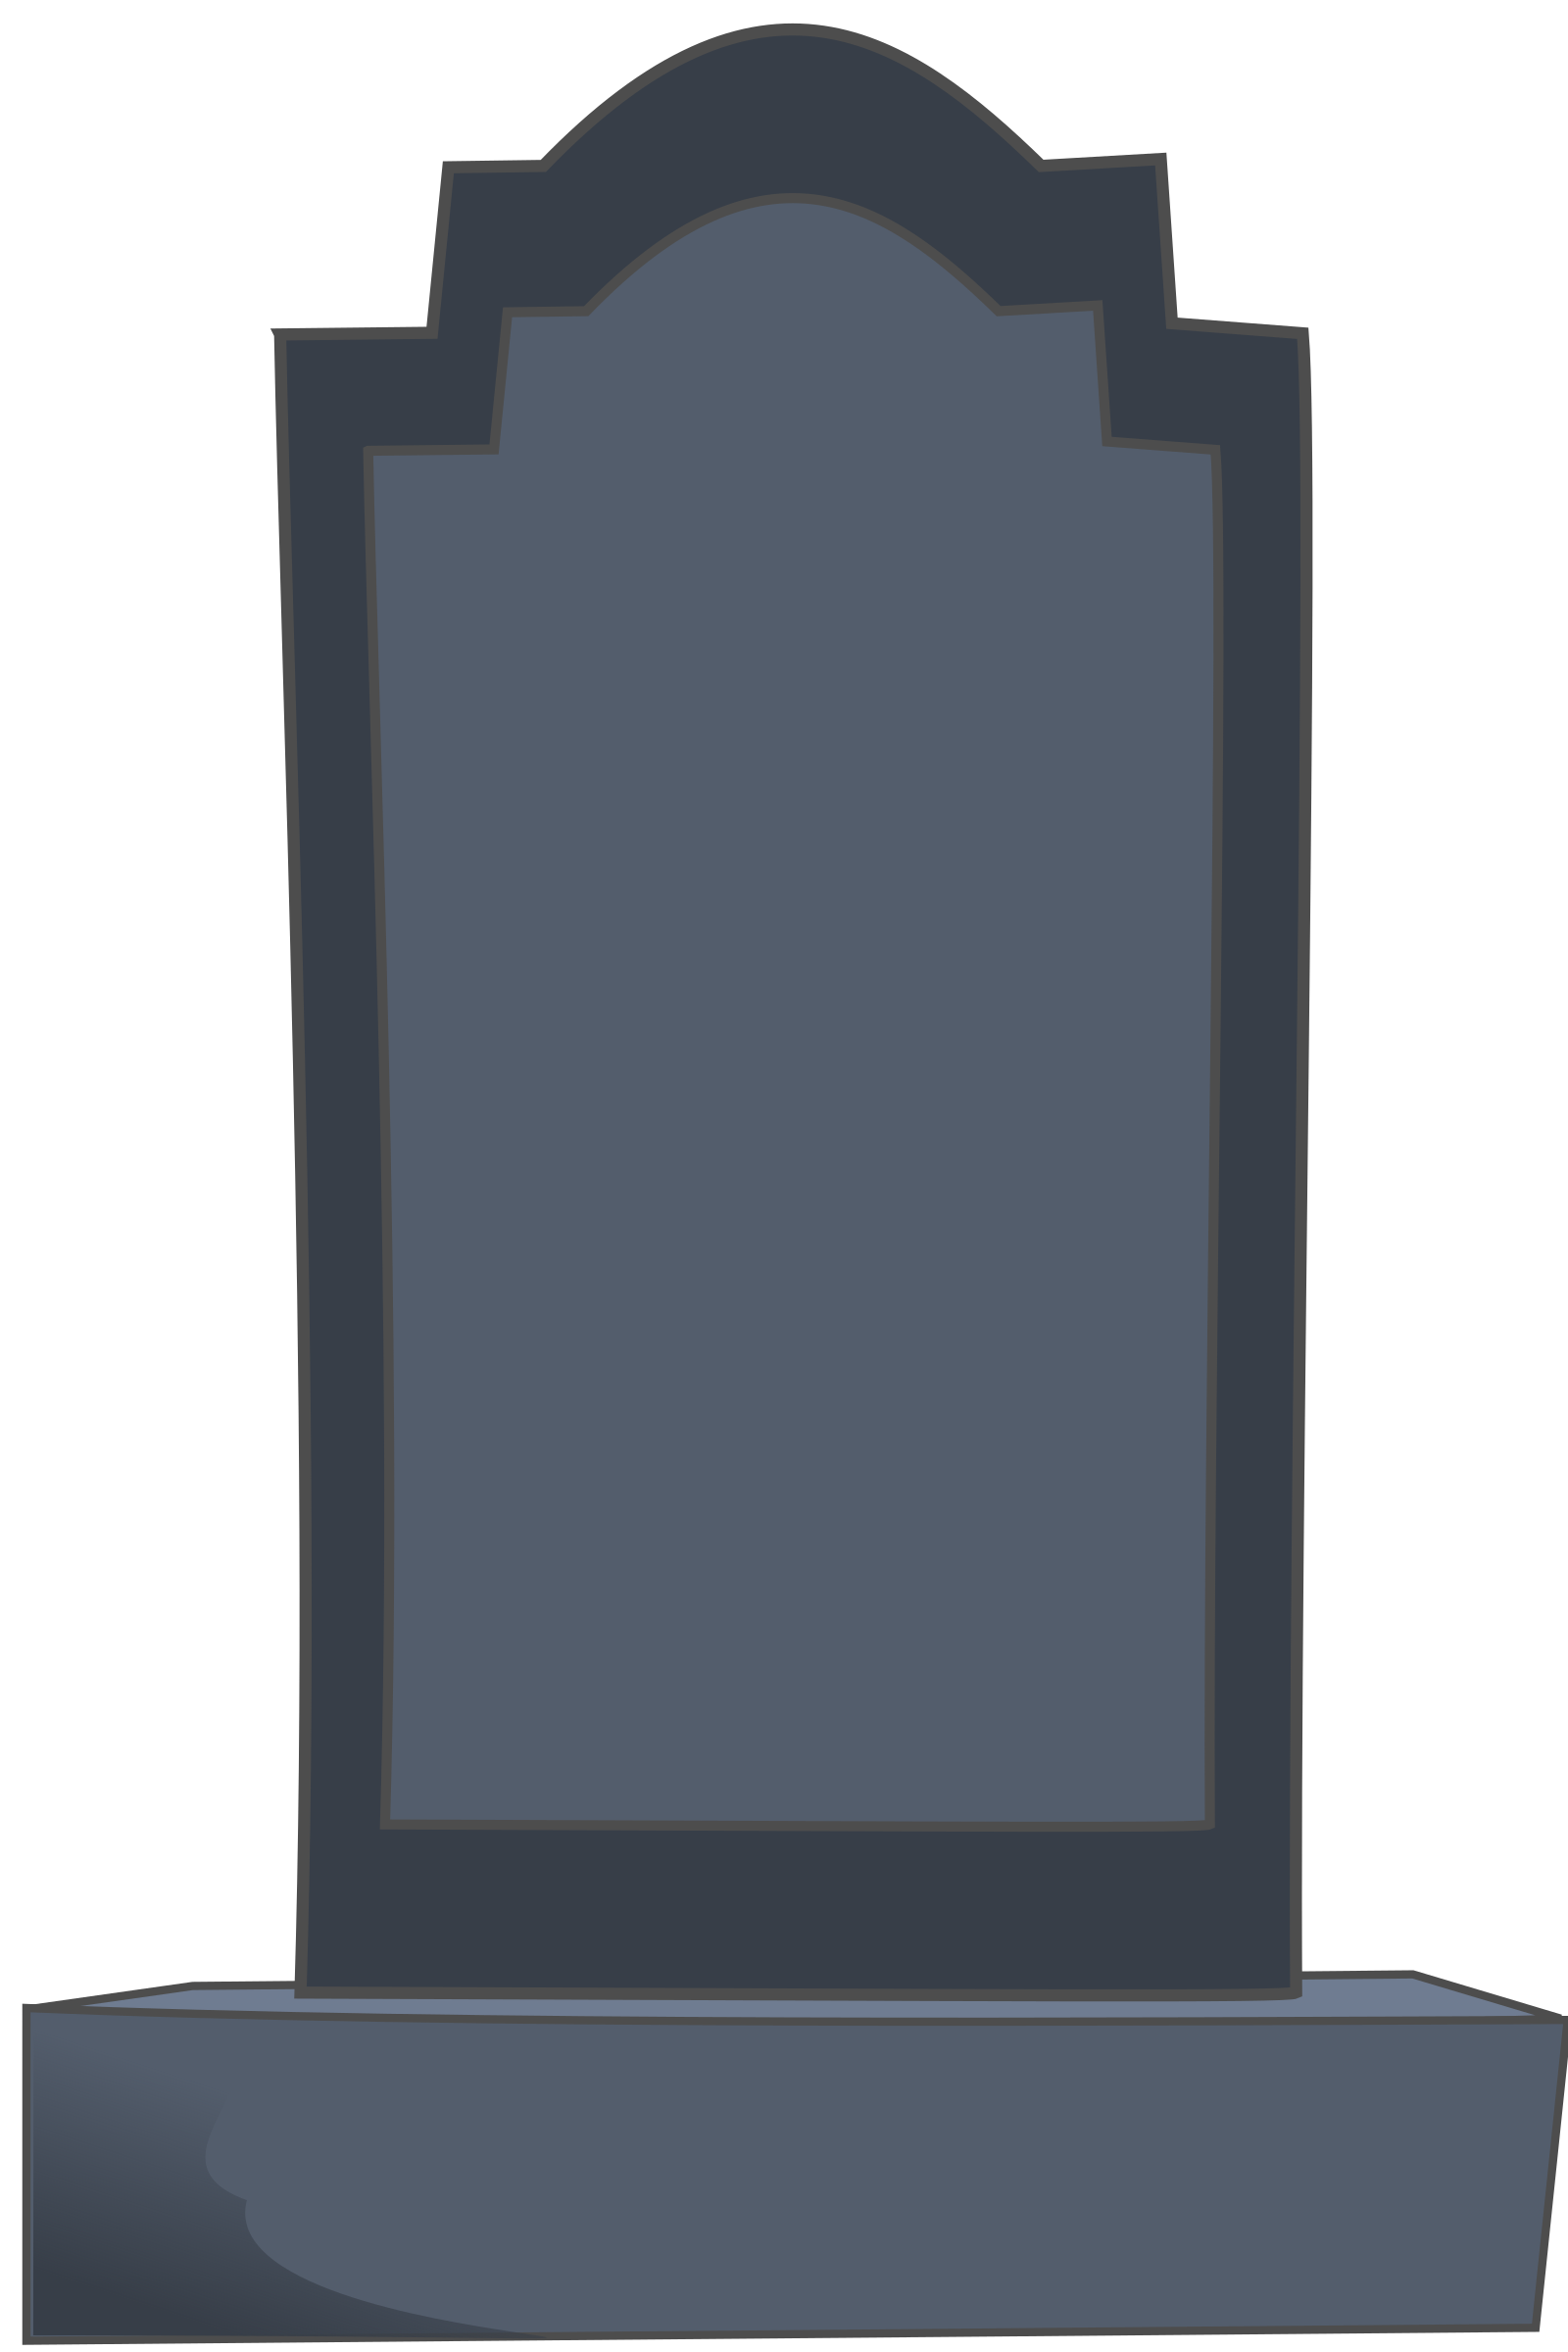 graphic library download L pide big image. Blank gravestone clipart